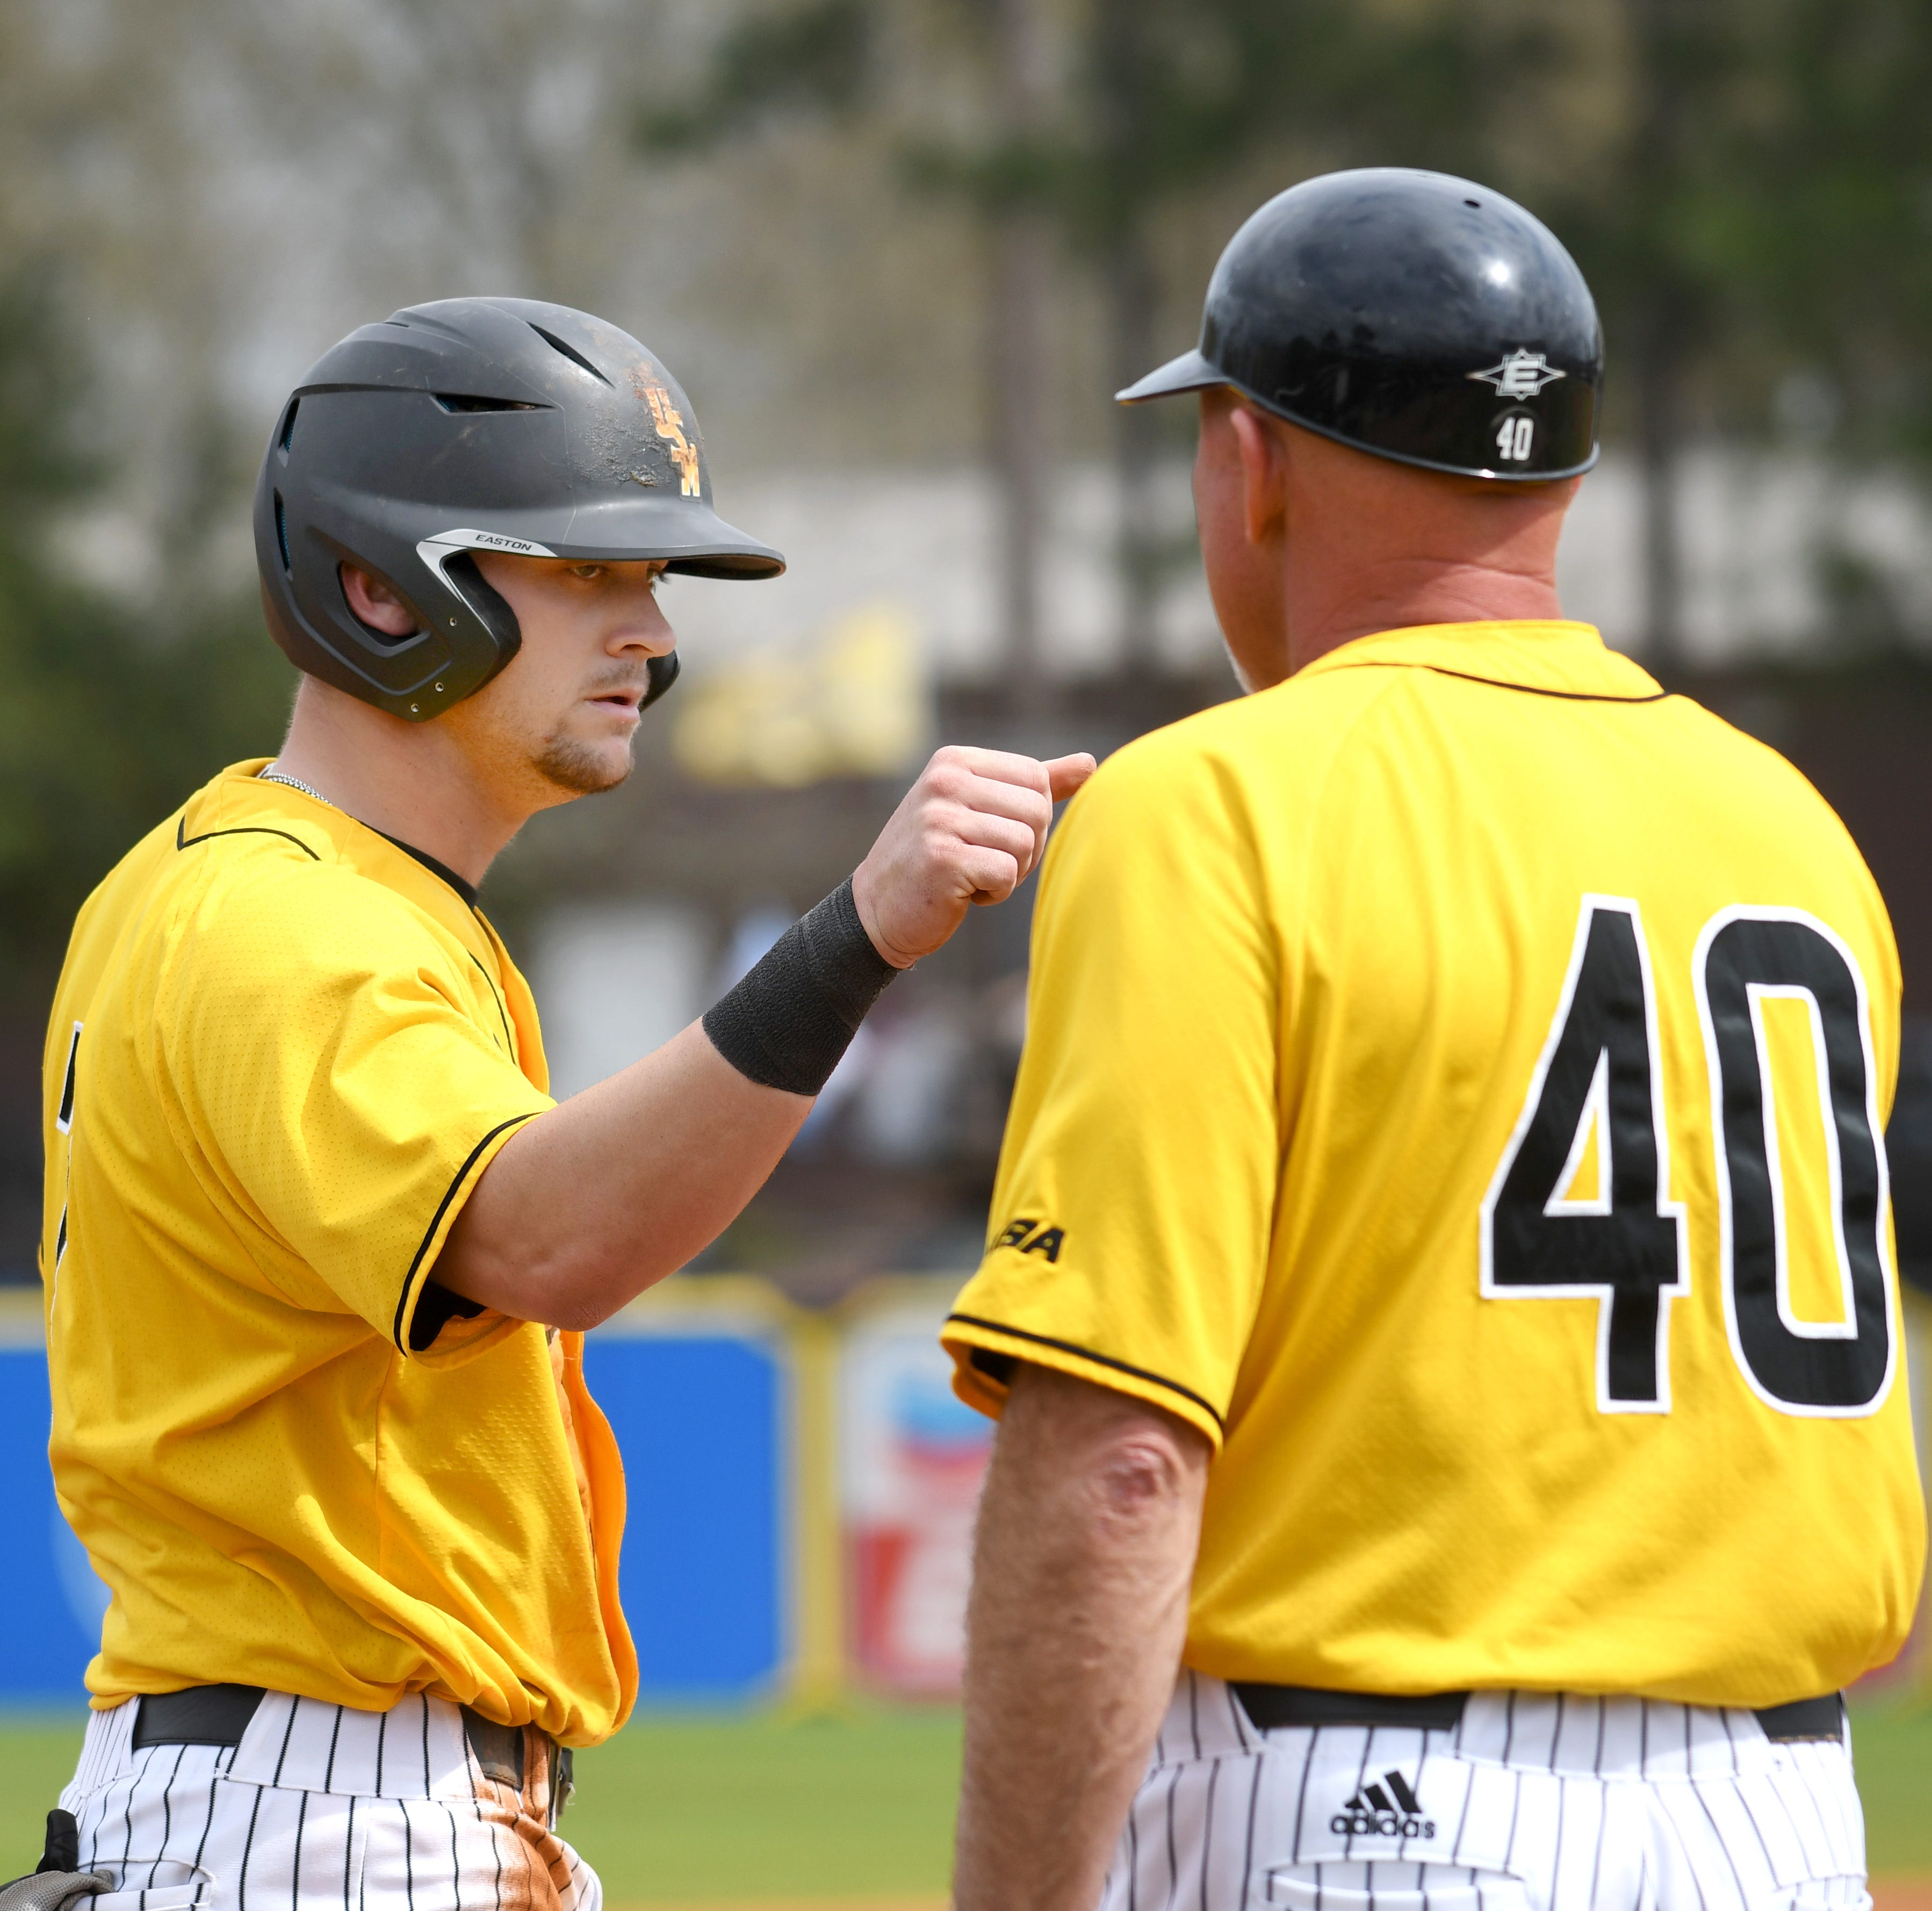 Southern Miss opens road swing with 5-0 shutout of Nicholls State